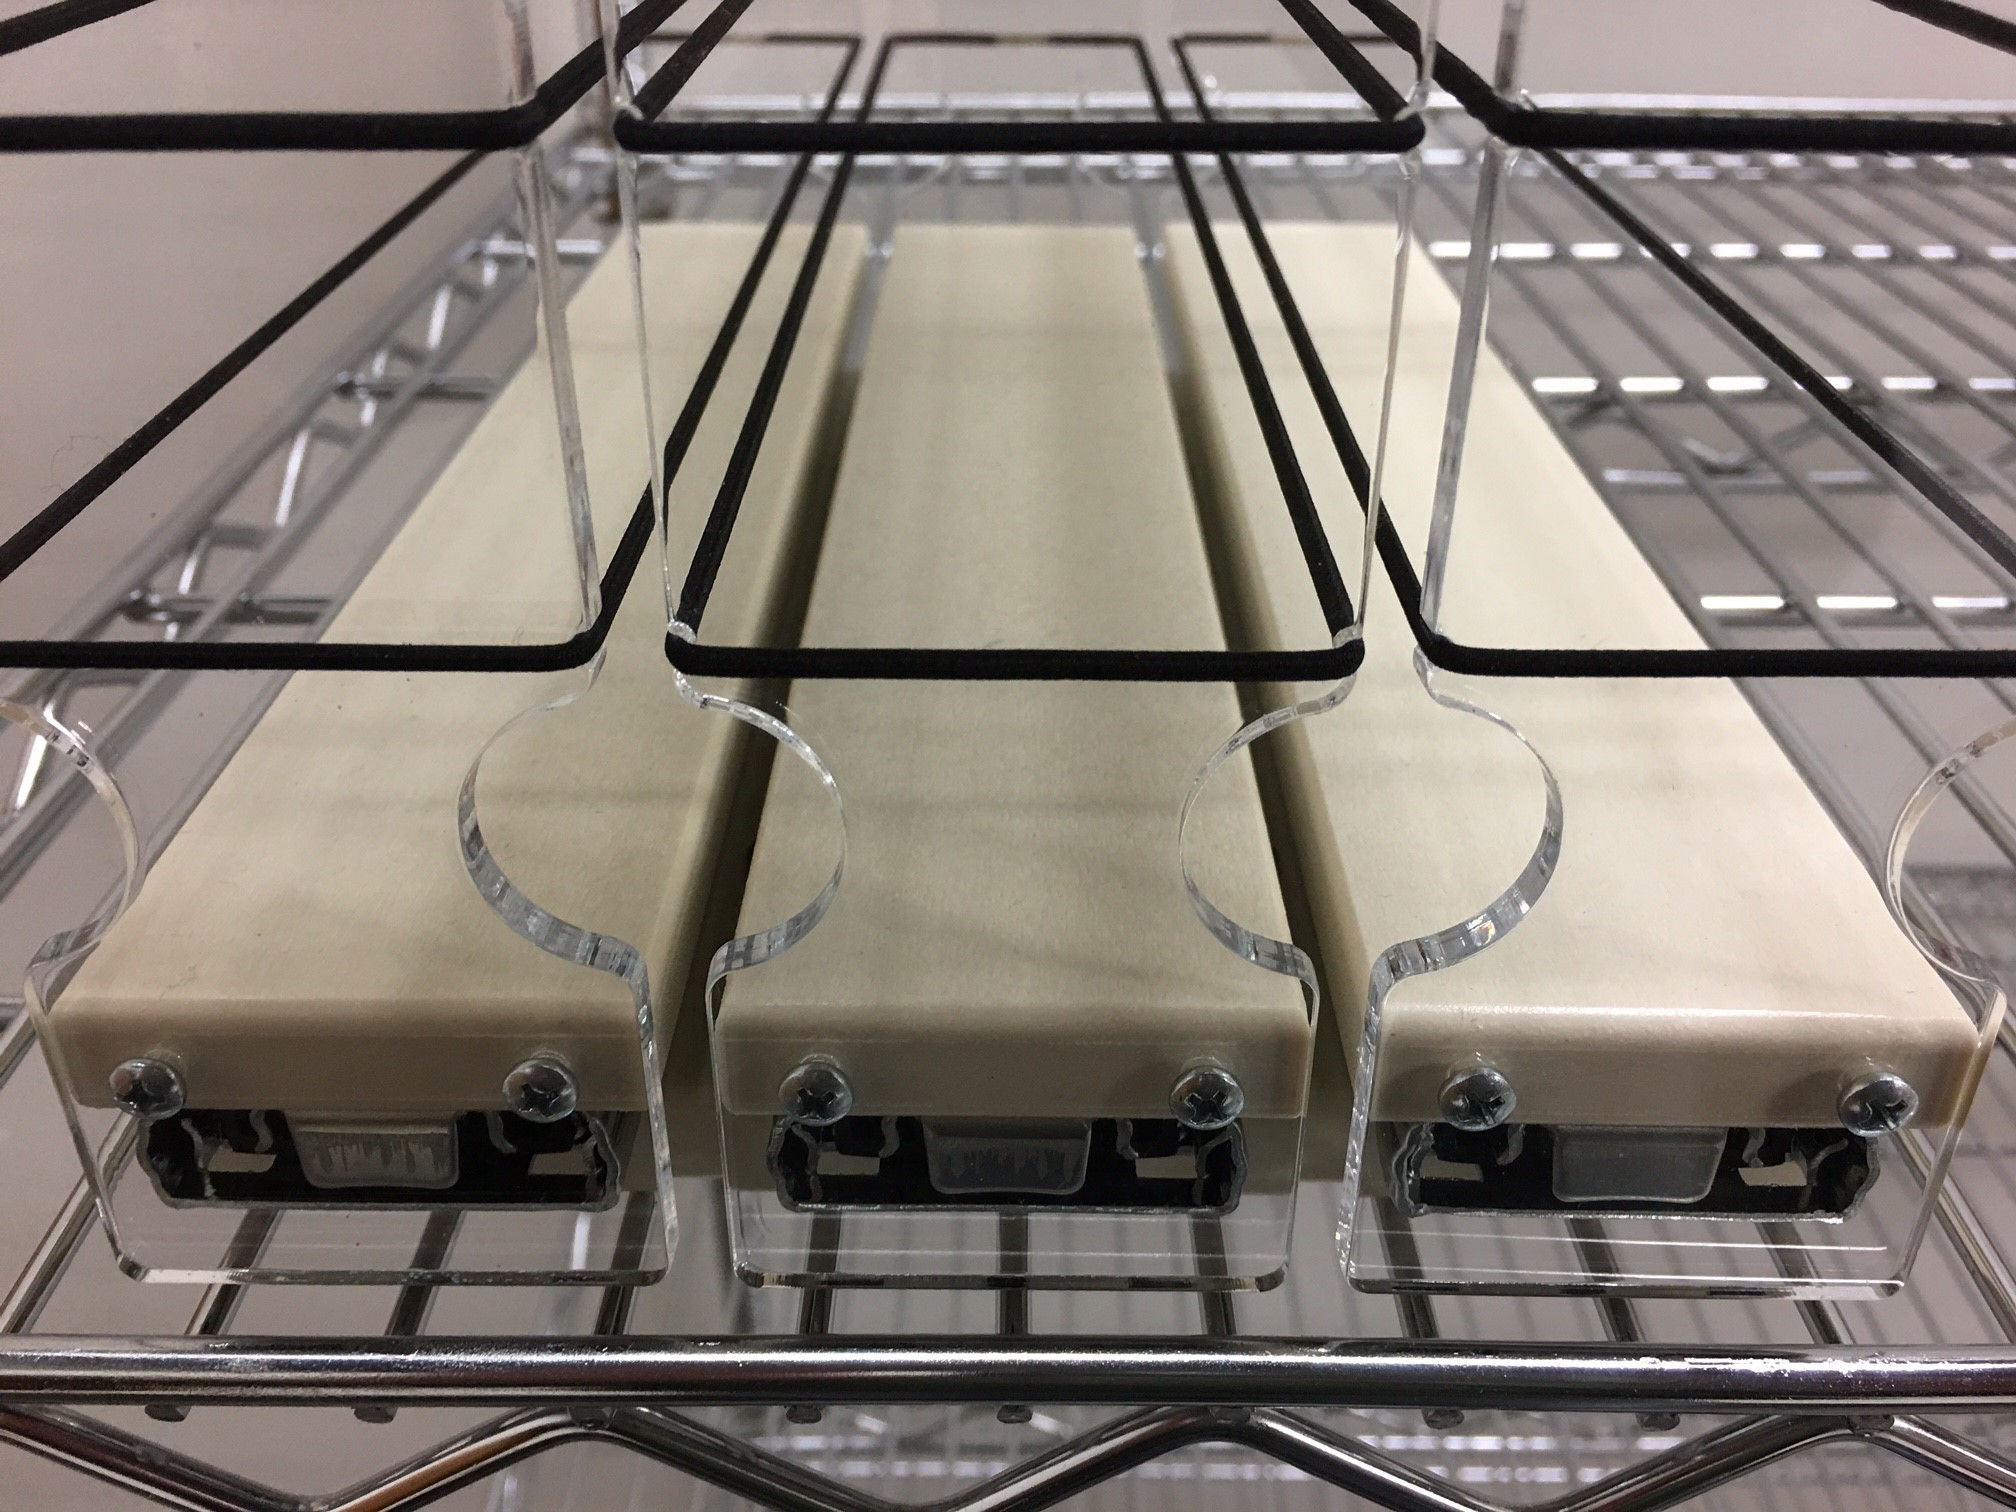 spice-rack-mounted-to-wire-rack.jpg